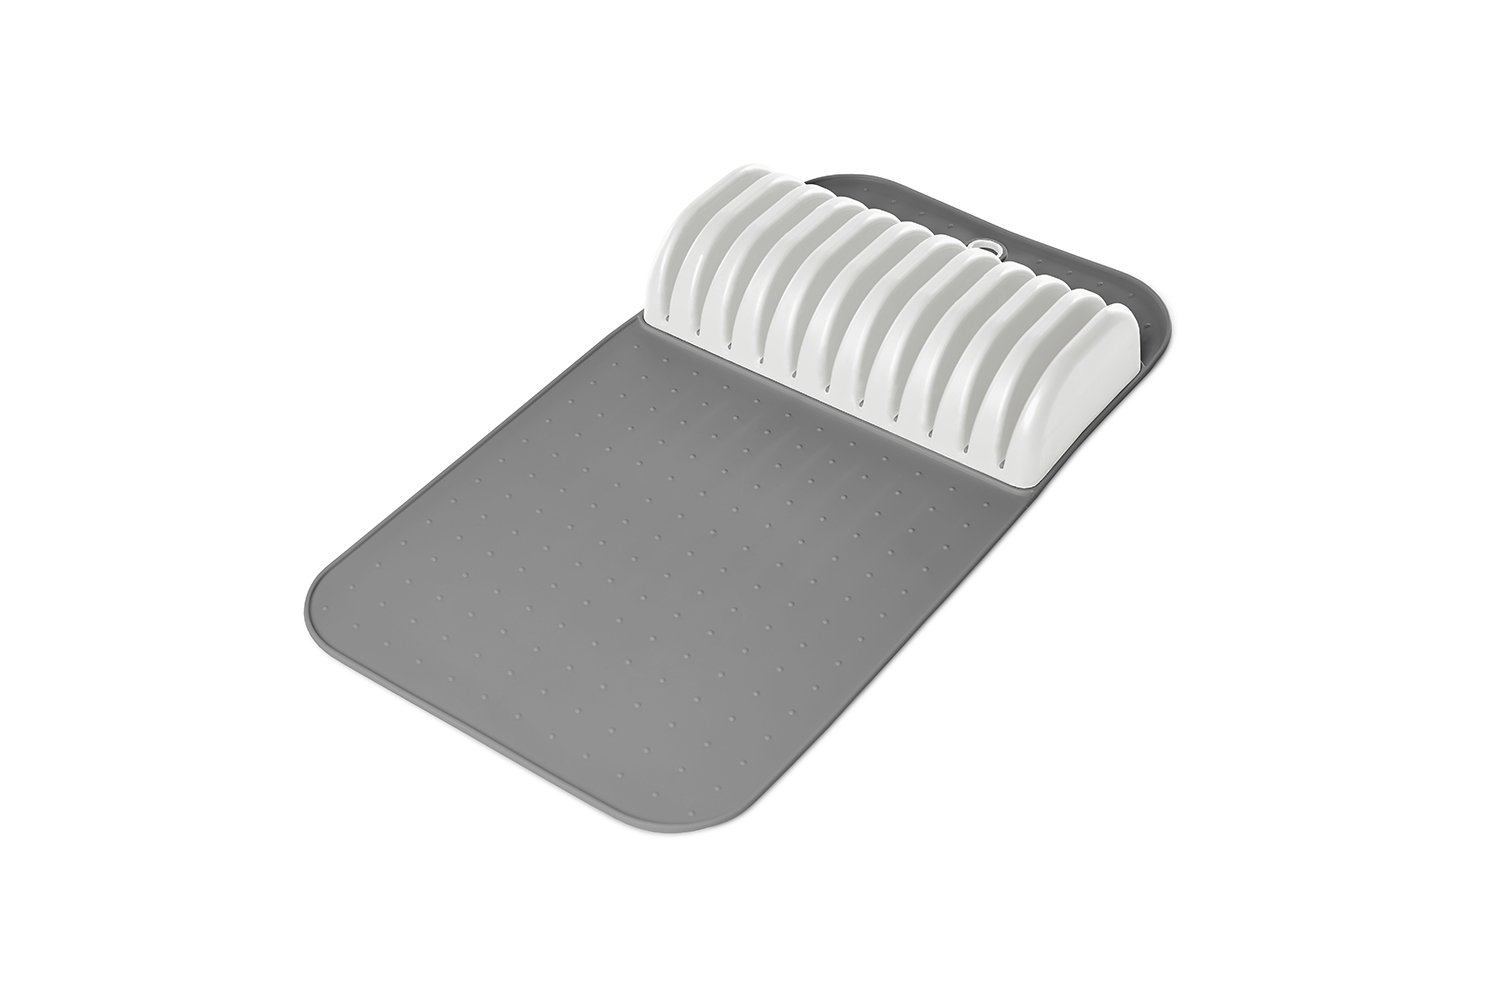 Madesmart - Safe in-Drawer Knife Mat with Soft Grip Slot in Grey Color, Holds up to 11 Knives